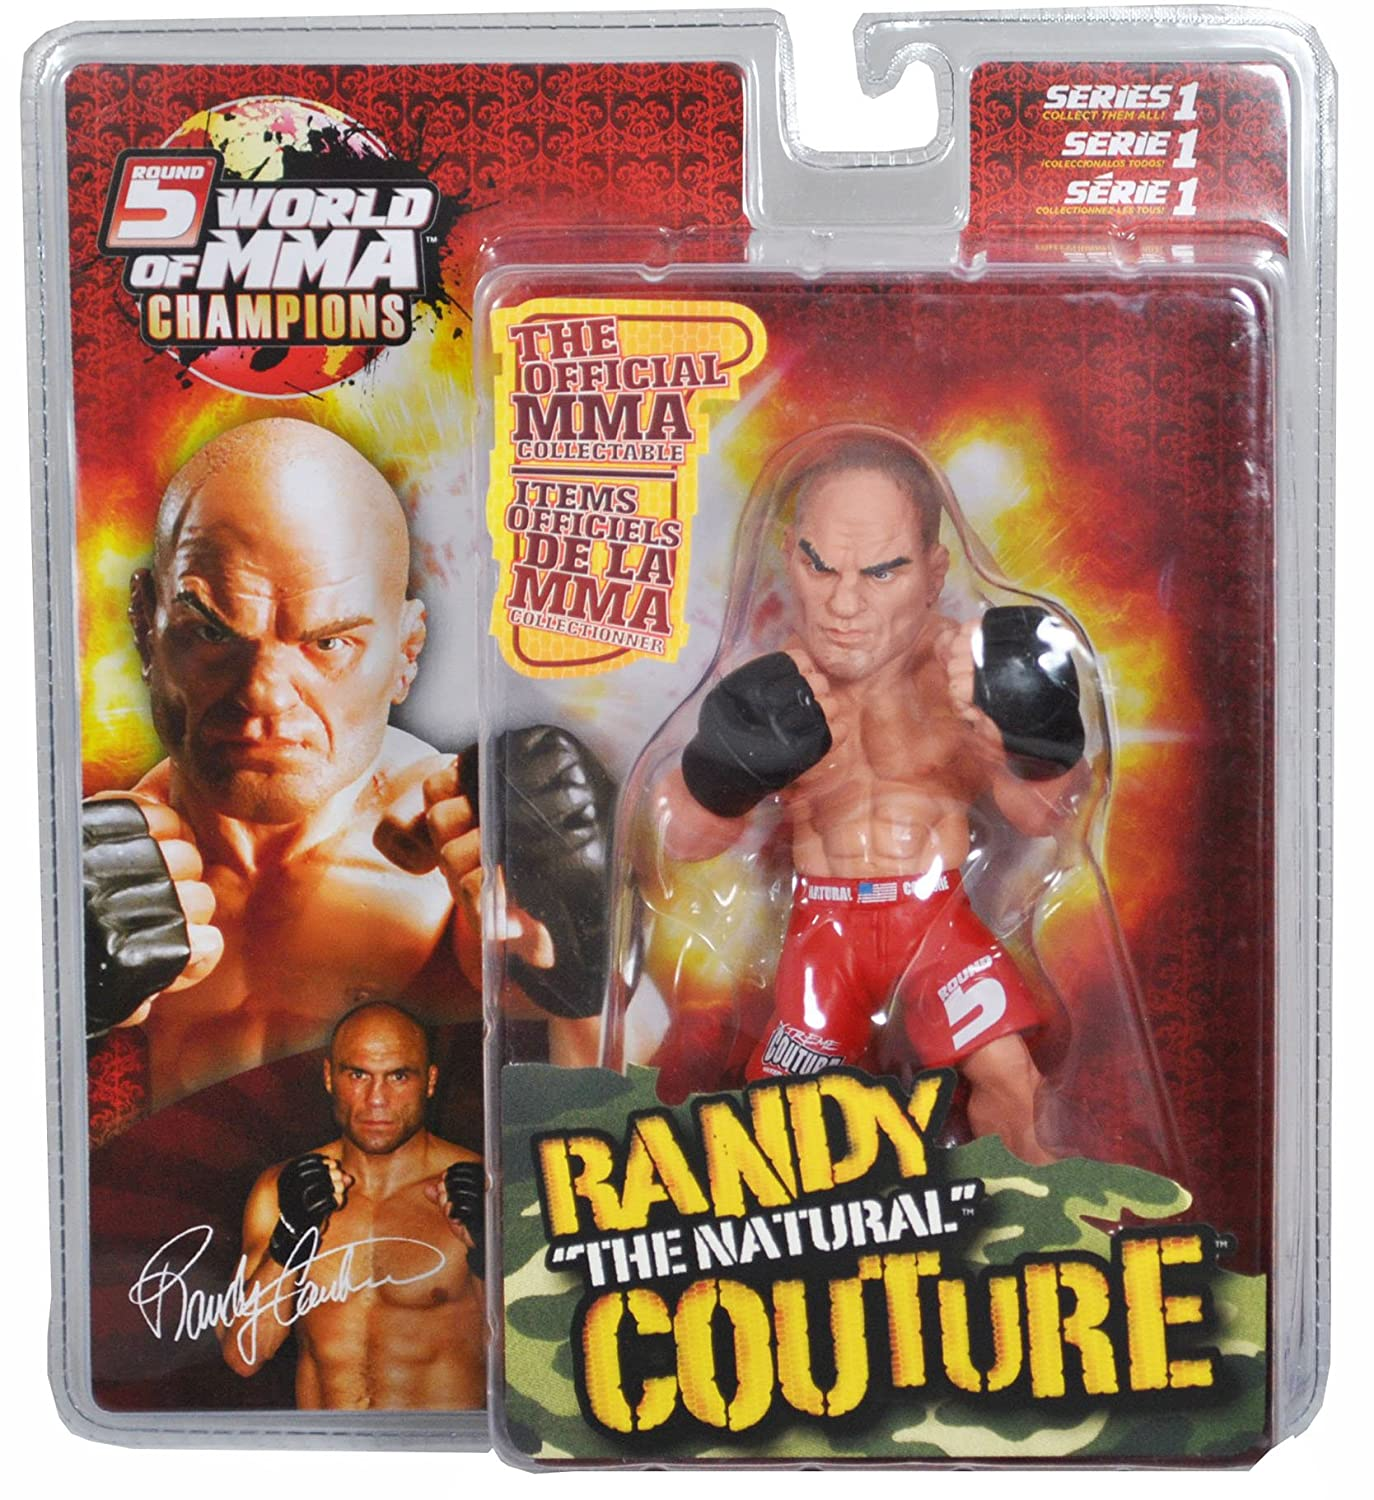 Year 2007 Series 1 Round 5 World of MMA Champions 6 Inch Tall Action Figure - RANDY